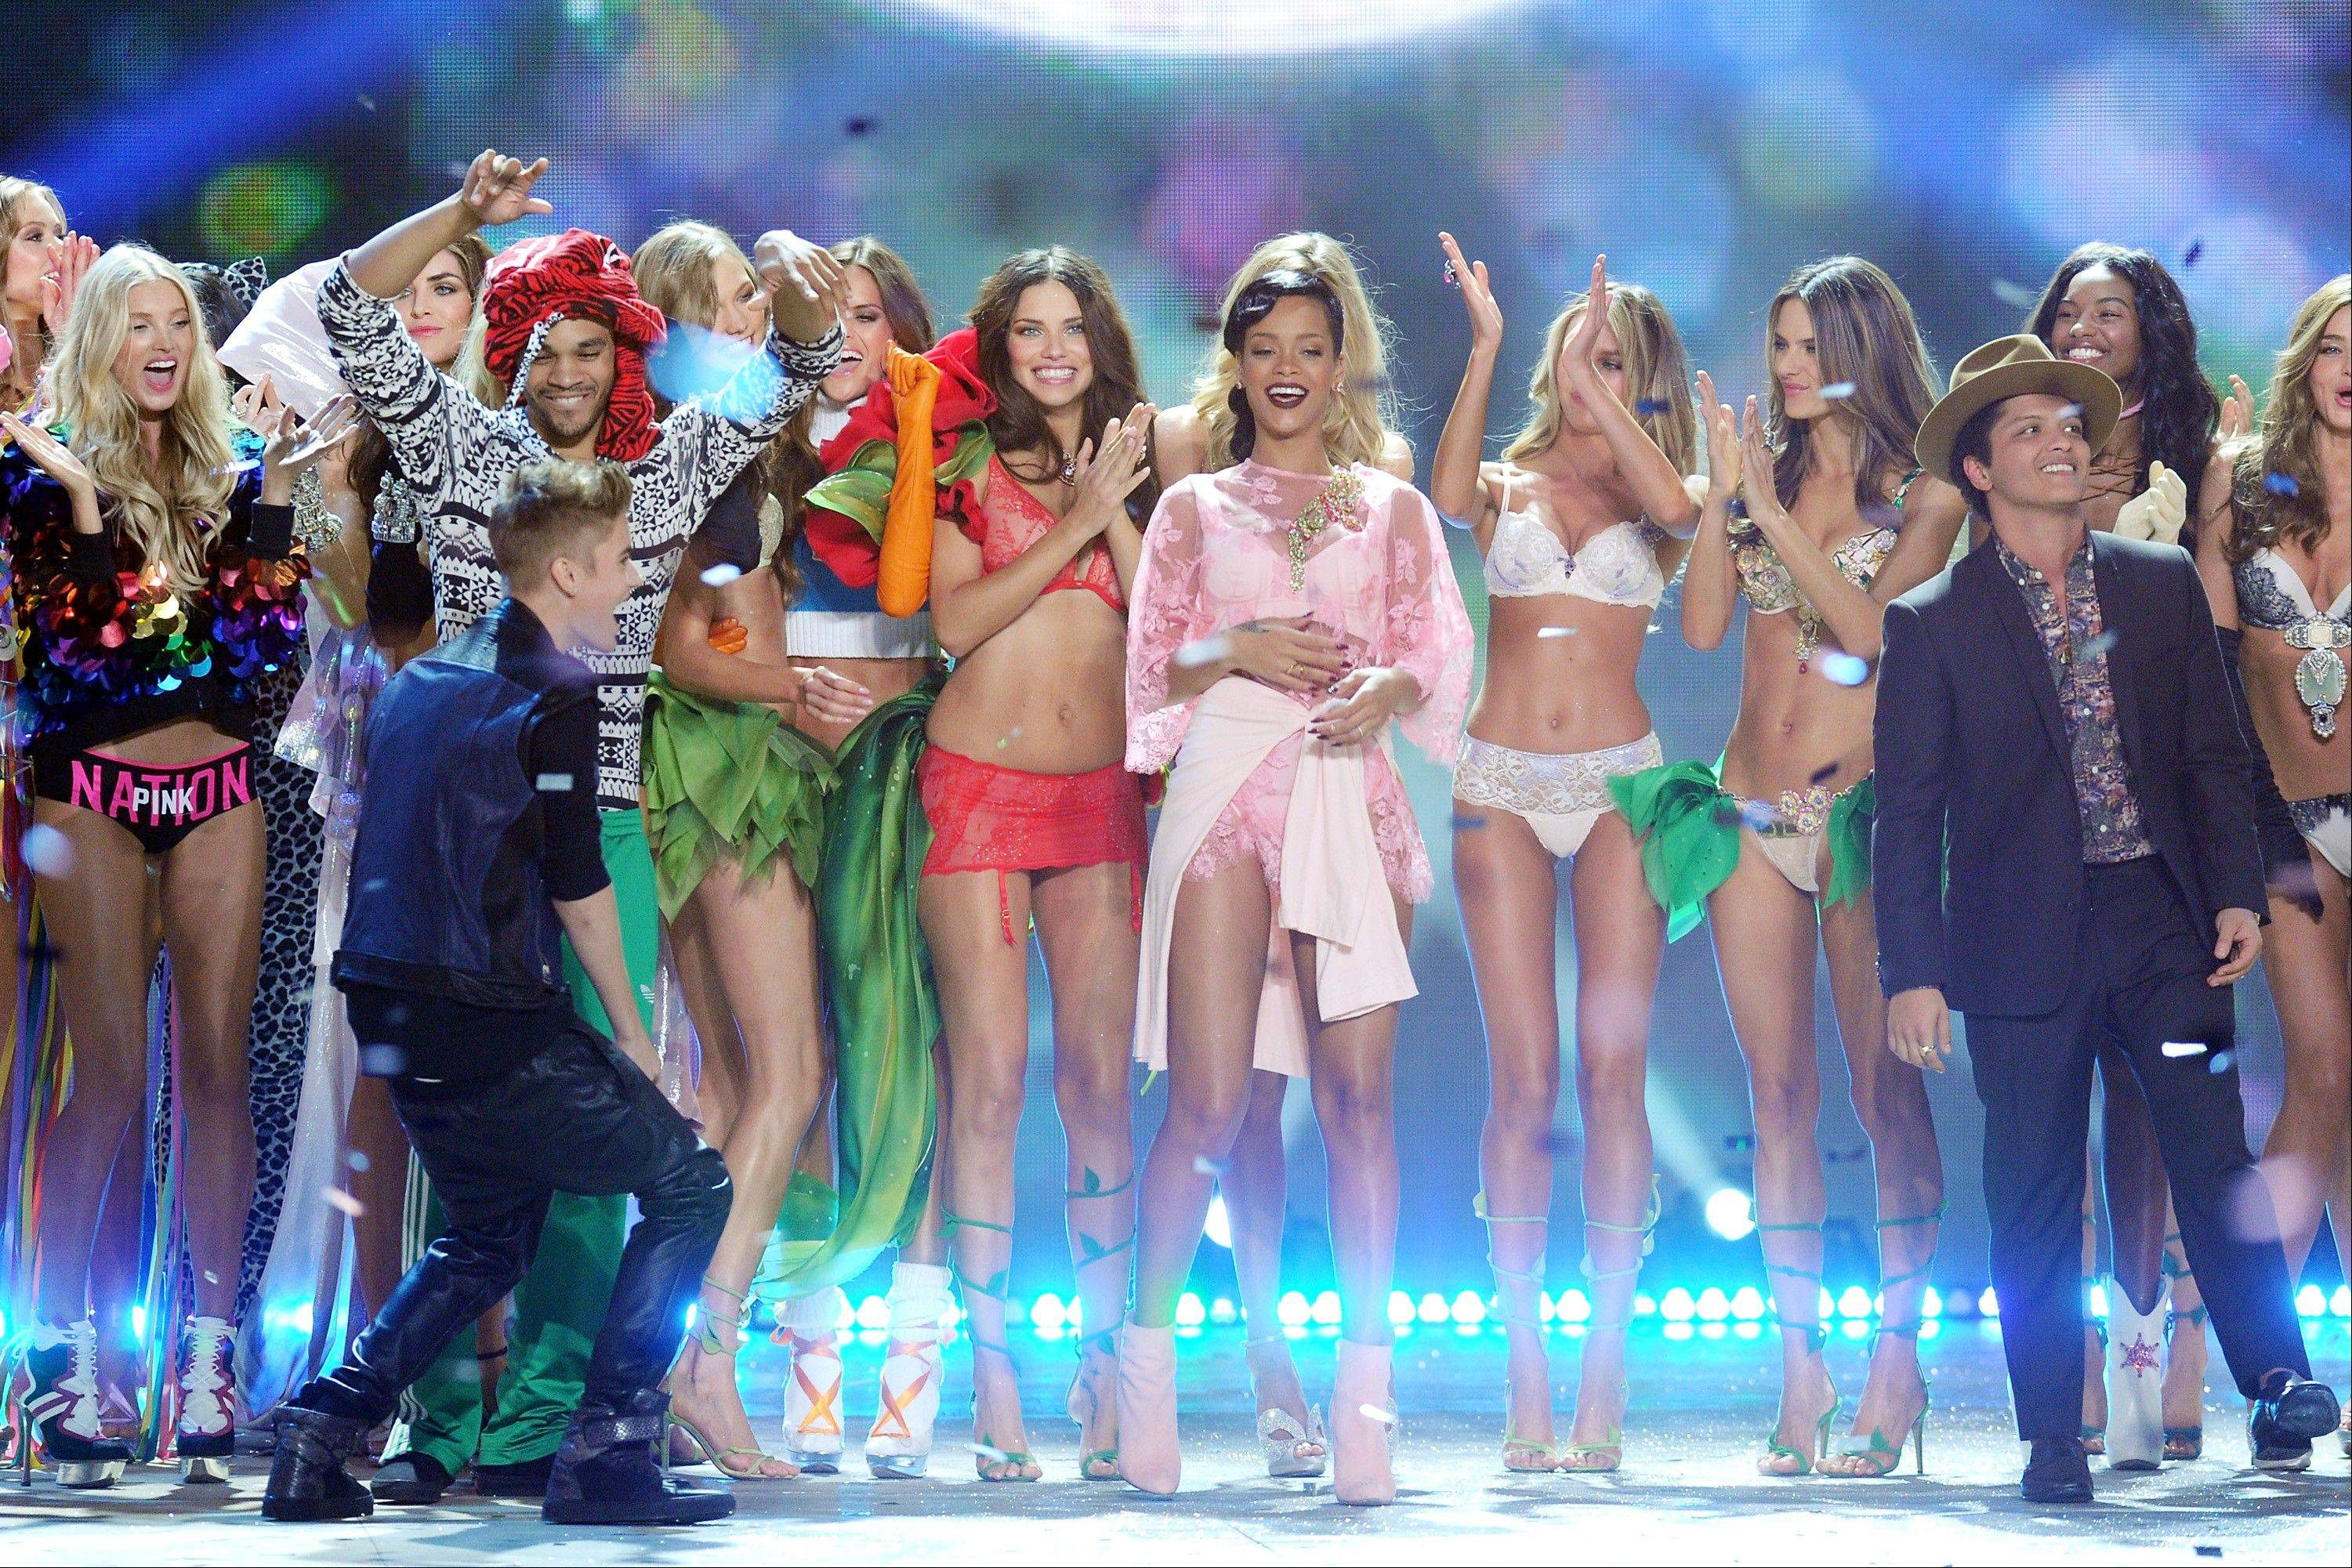 Singers Justin Bieber, Rihanna and Bruno Mars celebrate during the finale of the 2012 Victoria's Secret Fashion Show.